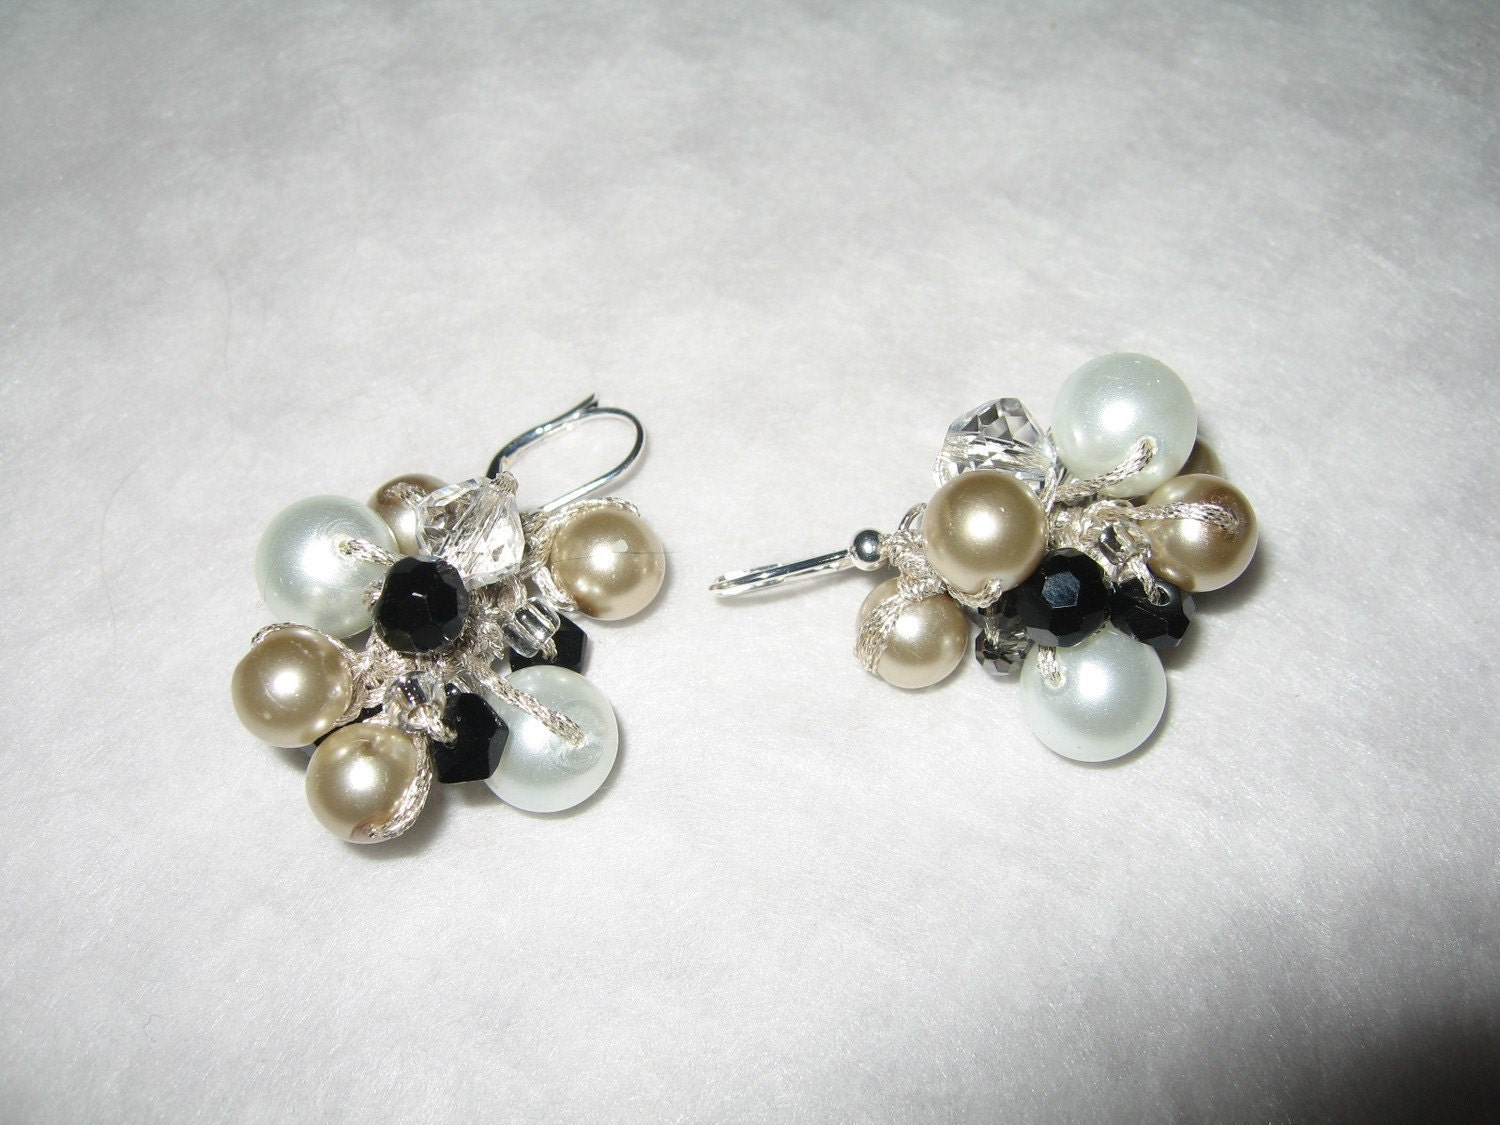 Black Tie  Affair, Cluster Bauble Hand Knit Earrings, Champagne, Soft White Pearl,  Smokey Quartz Crystal, unique Original Design